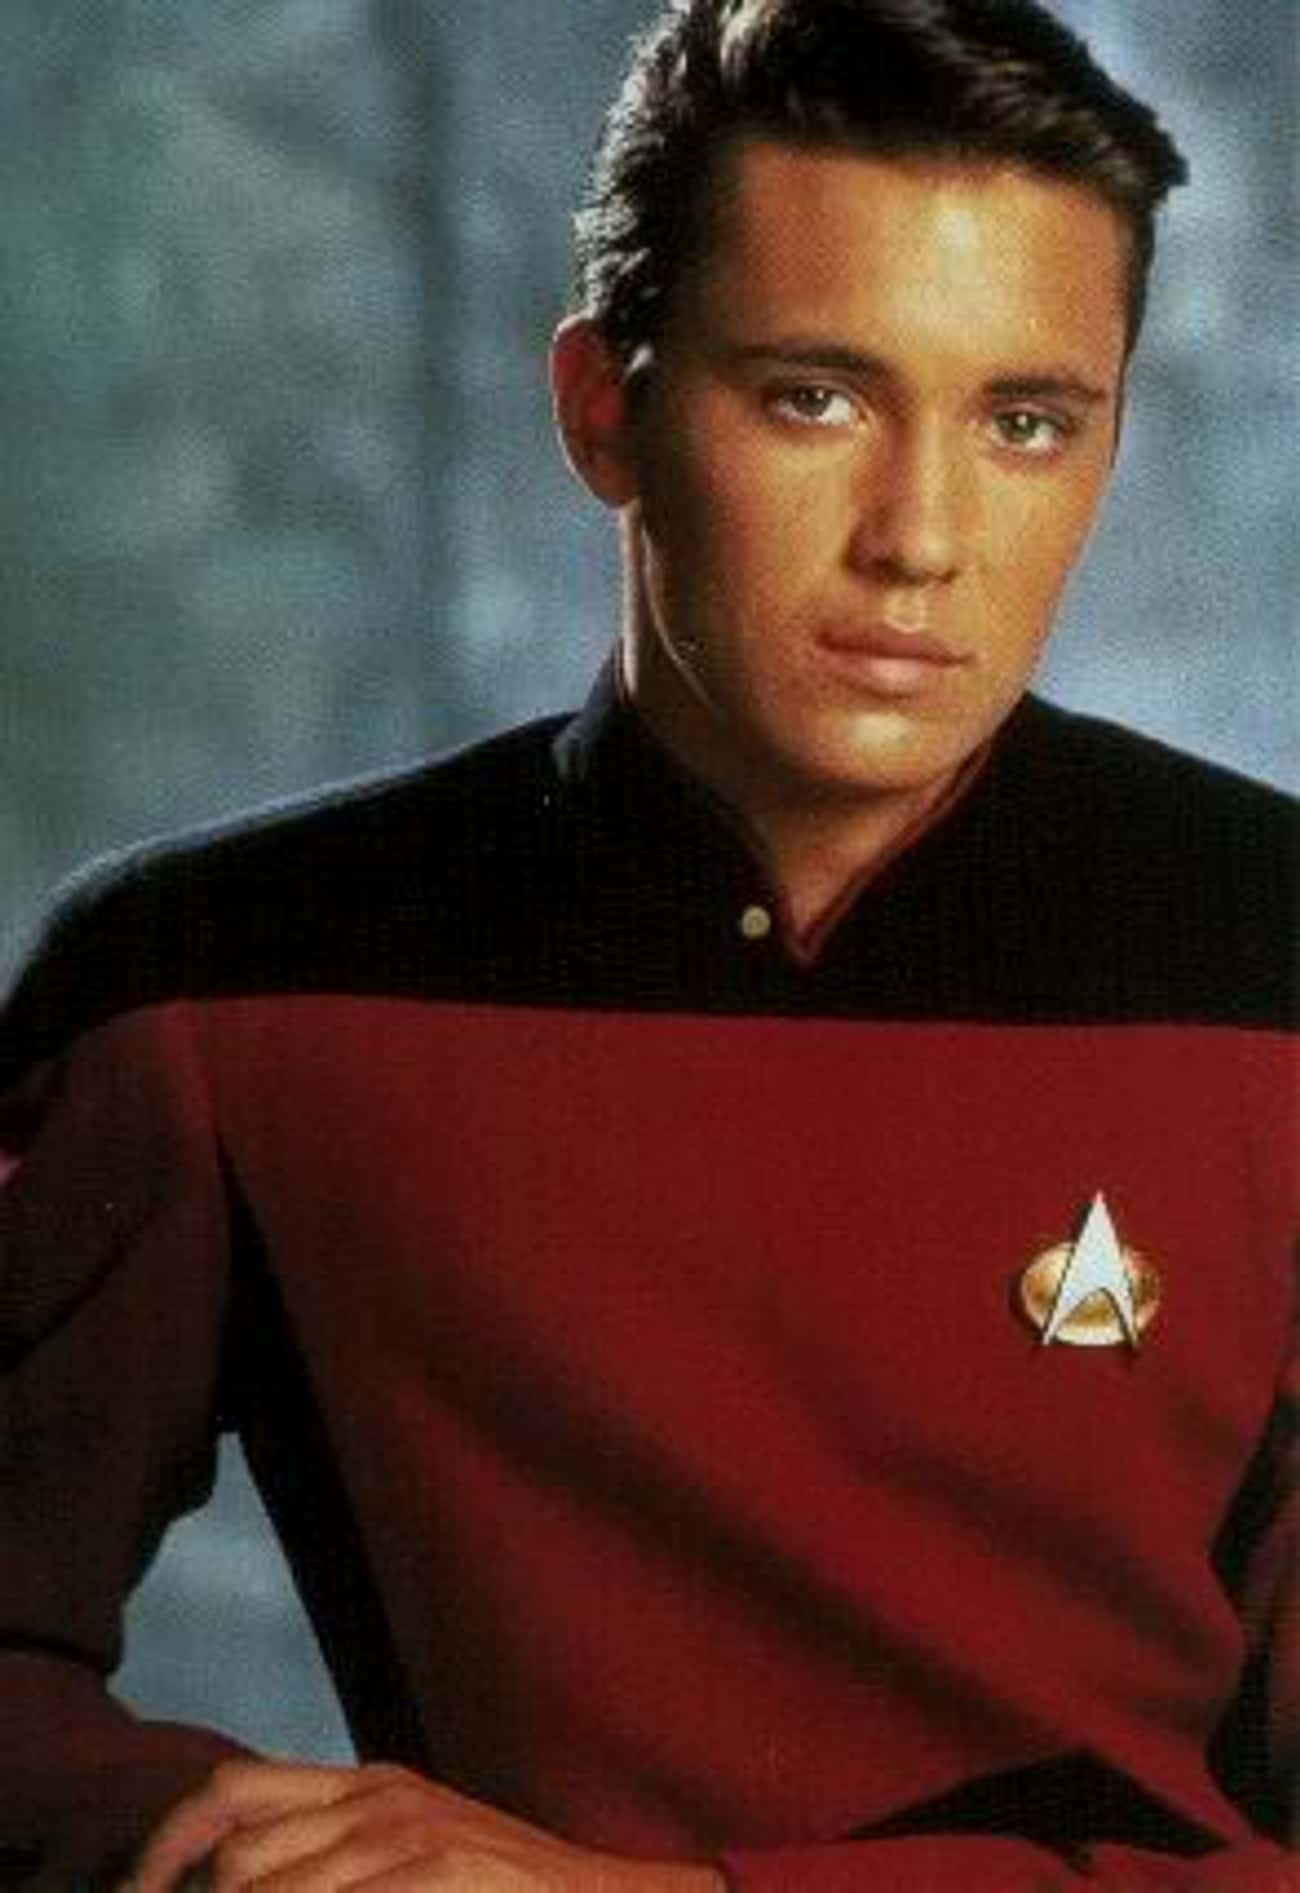 Wil Wheaton in Star Trek Outfi is listed (or ranked) 1 on the list Hot Wil Wheaton Photos